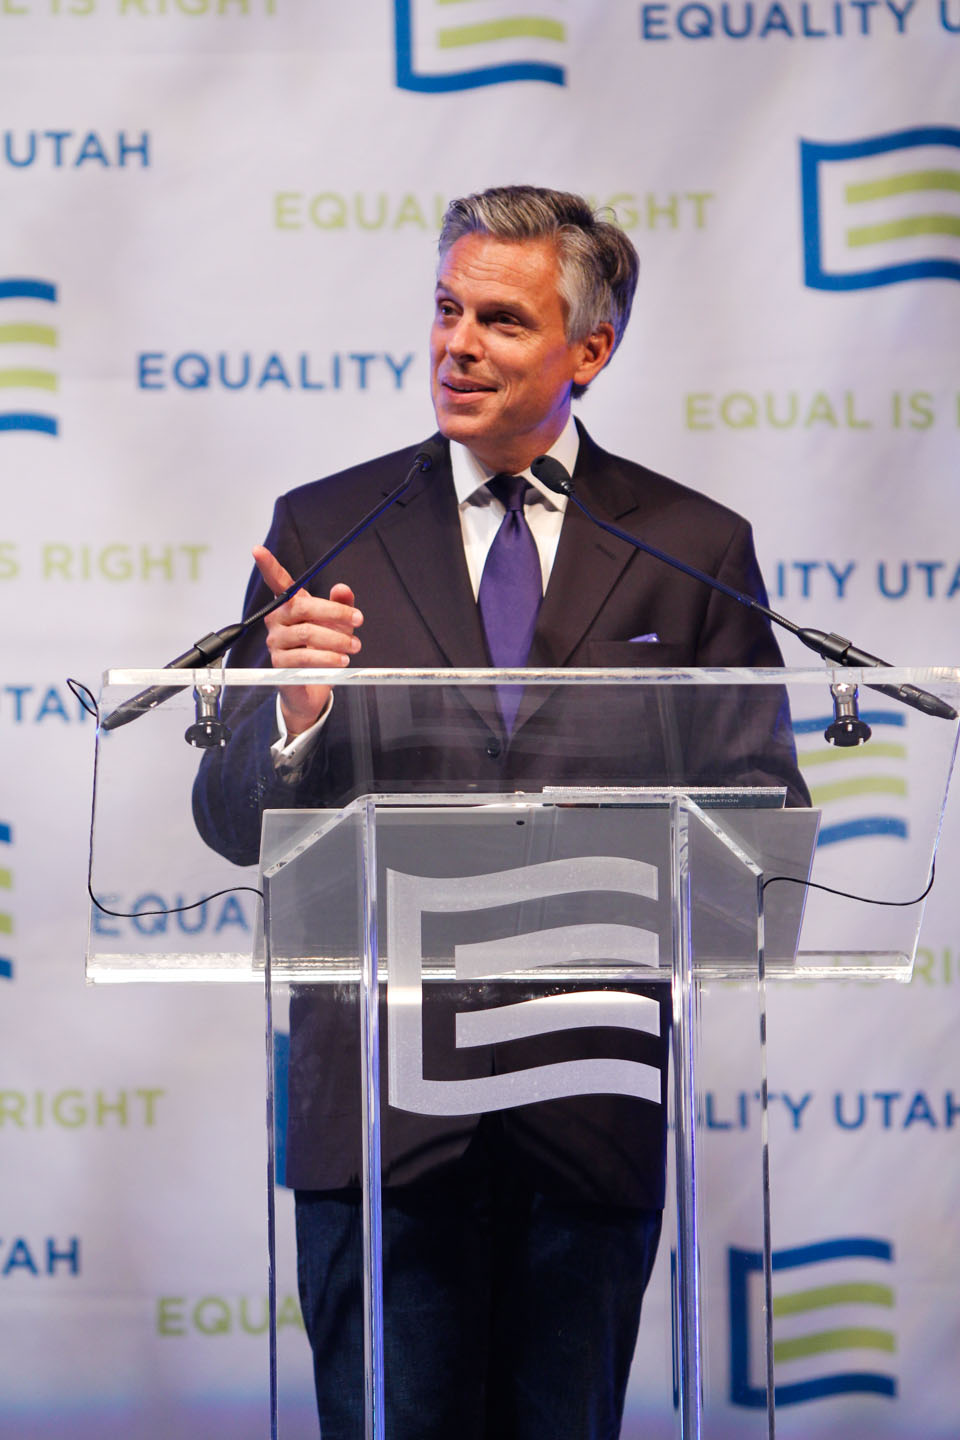 Governor Jon Huntsman addresses Equality Utah